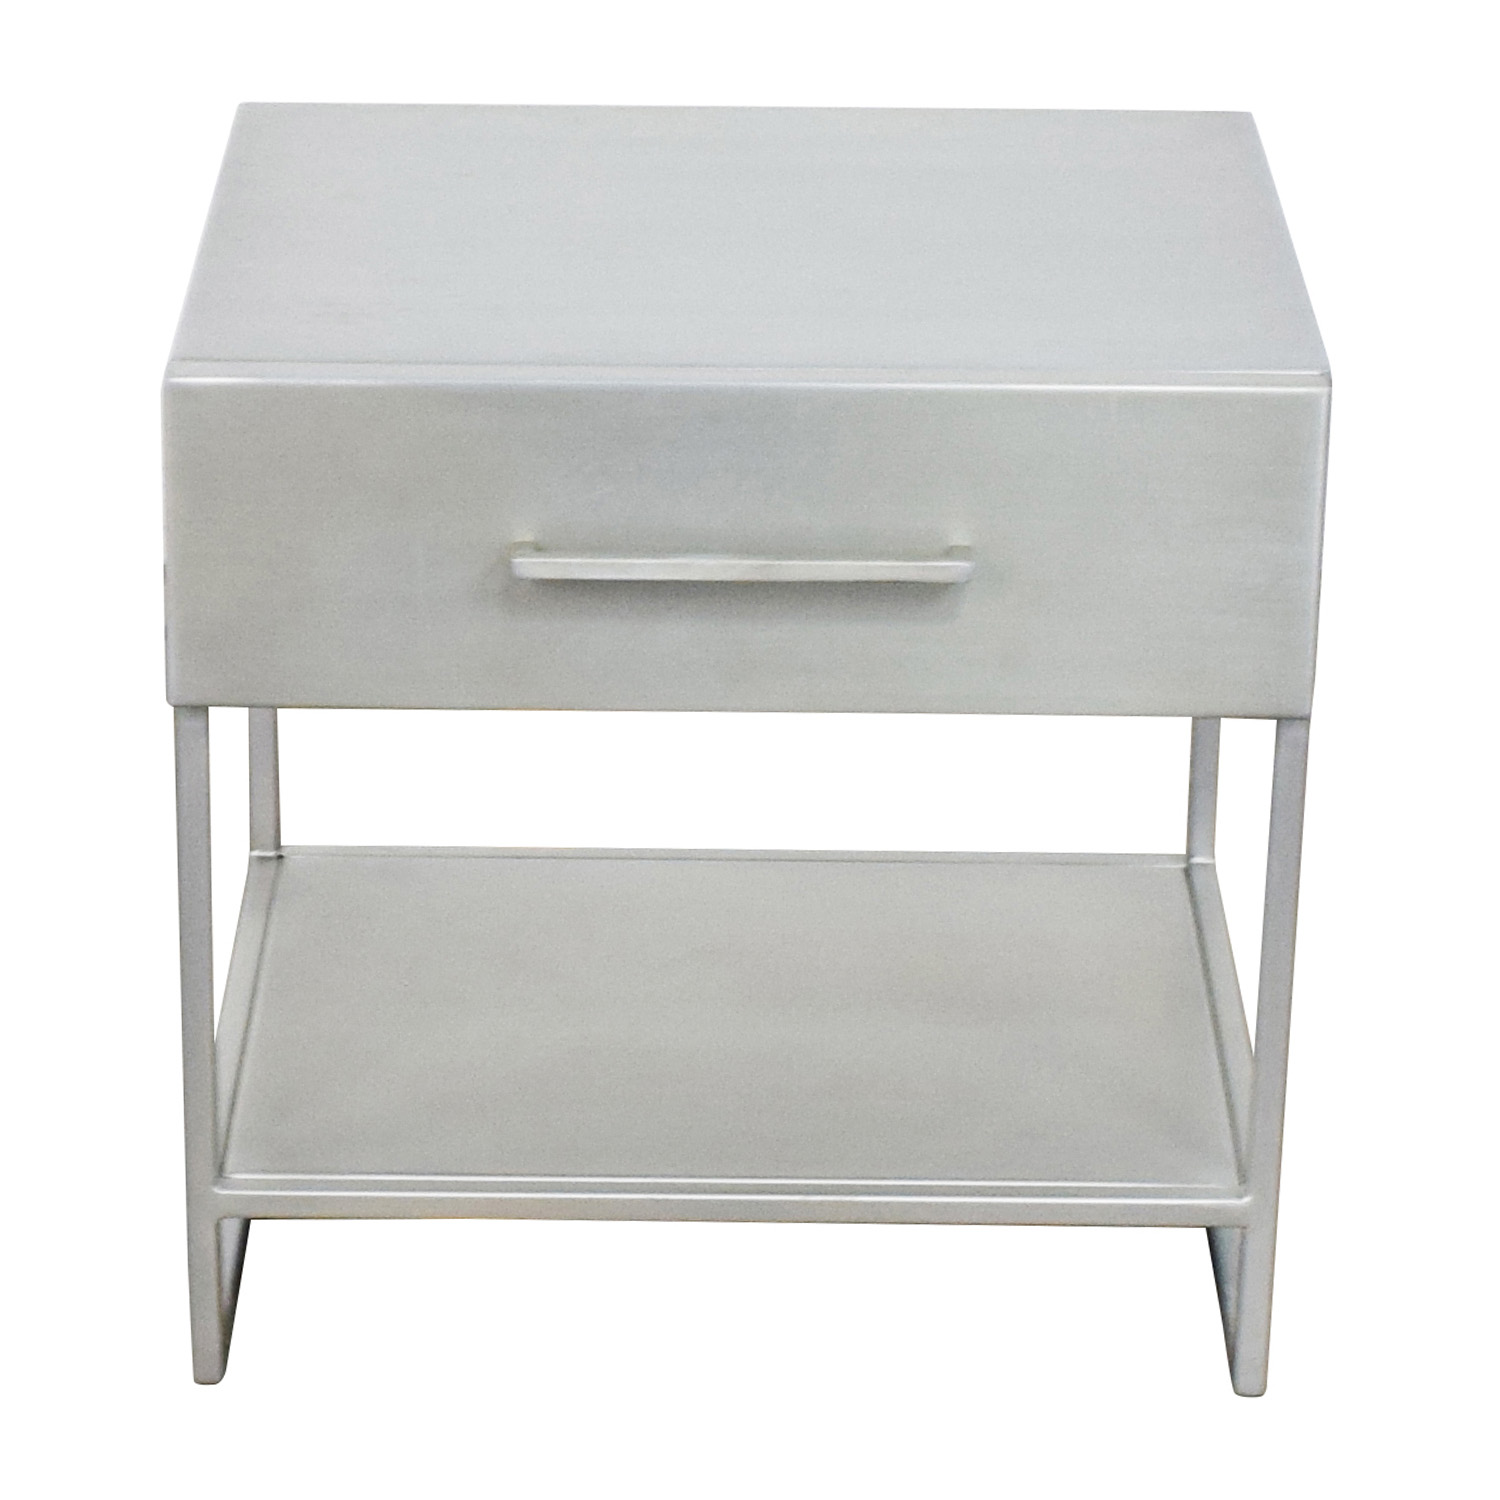 CB2 Proof Metal Night Table / End Tables